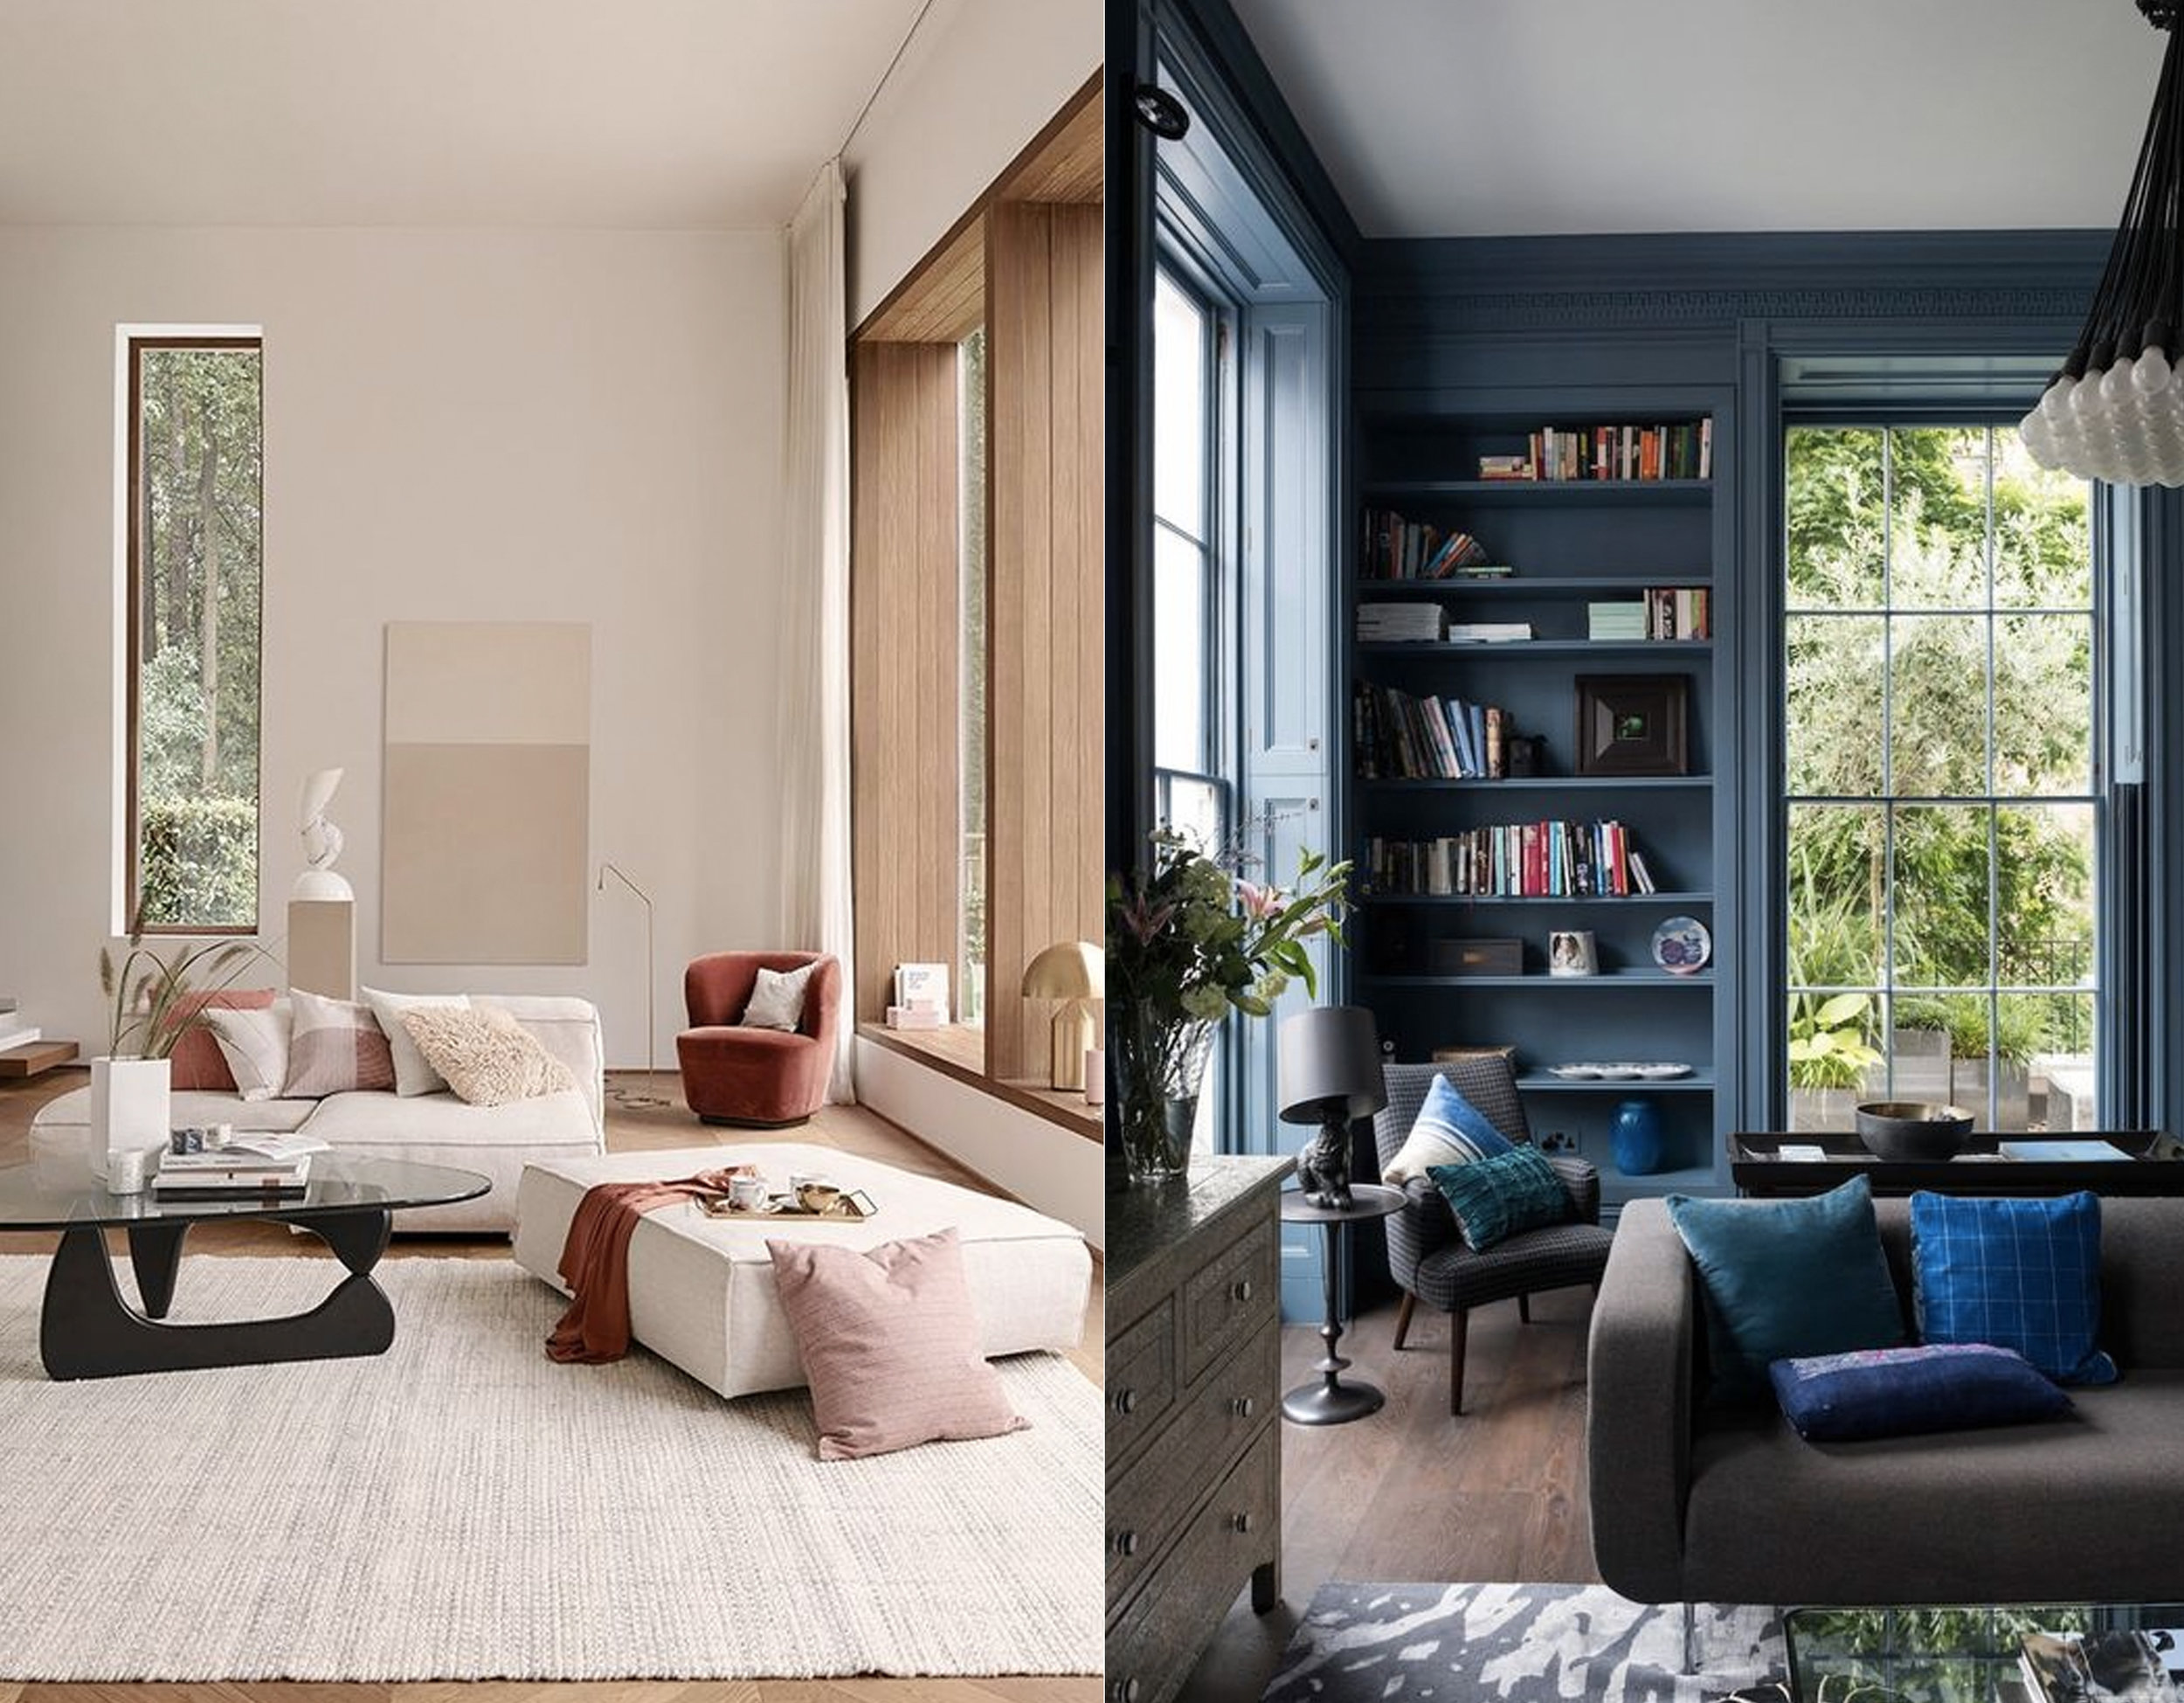 Living room on the left via  Deco Feast  - on the right via  Apartment Therapy